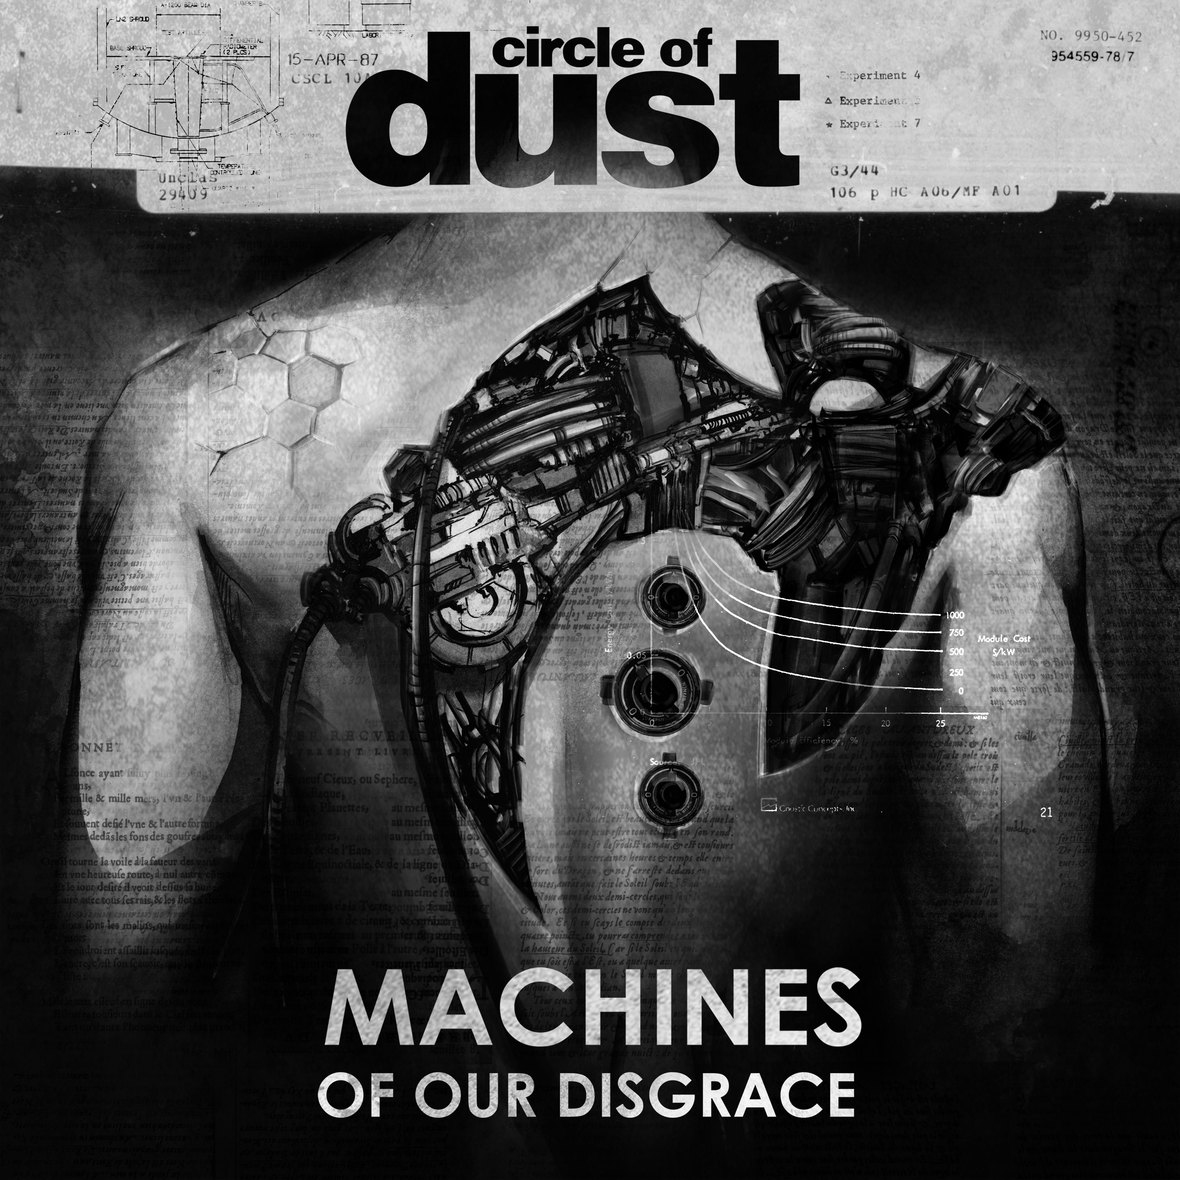 CoD Machines of our disgrace Cover FINAL-FUGA-WEB-Optimized